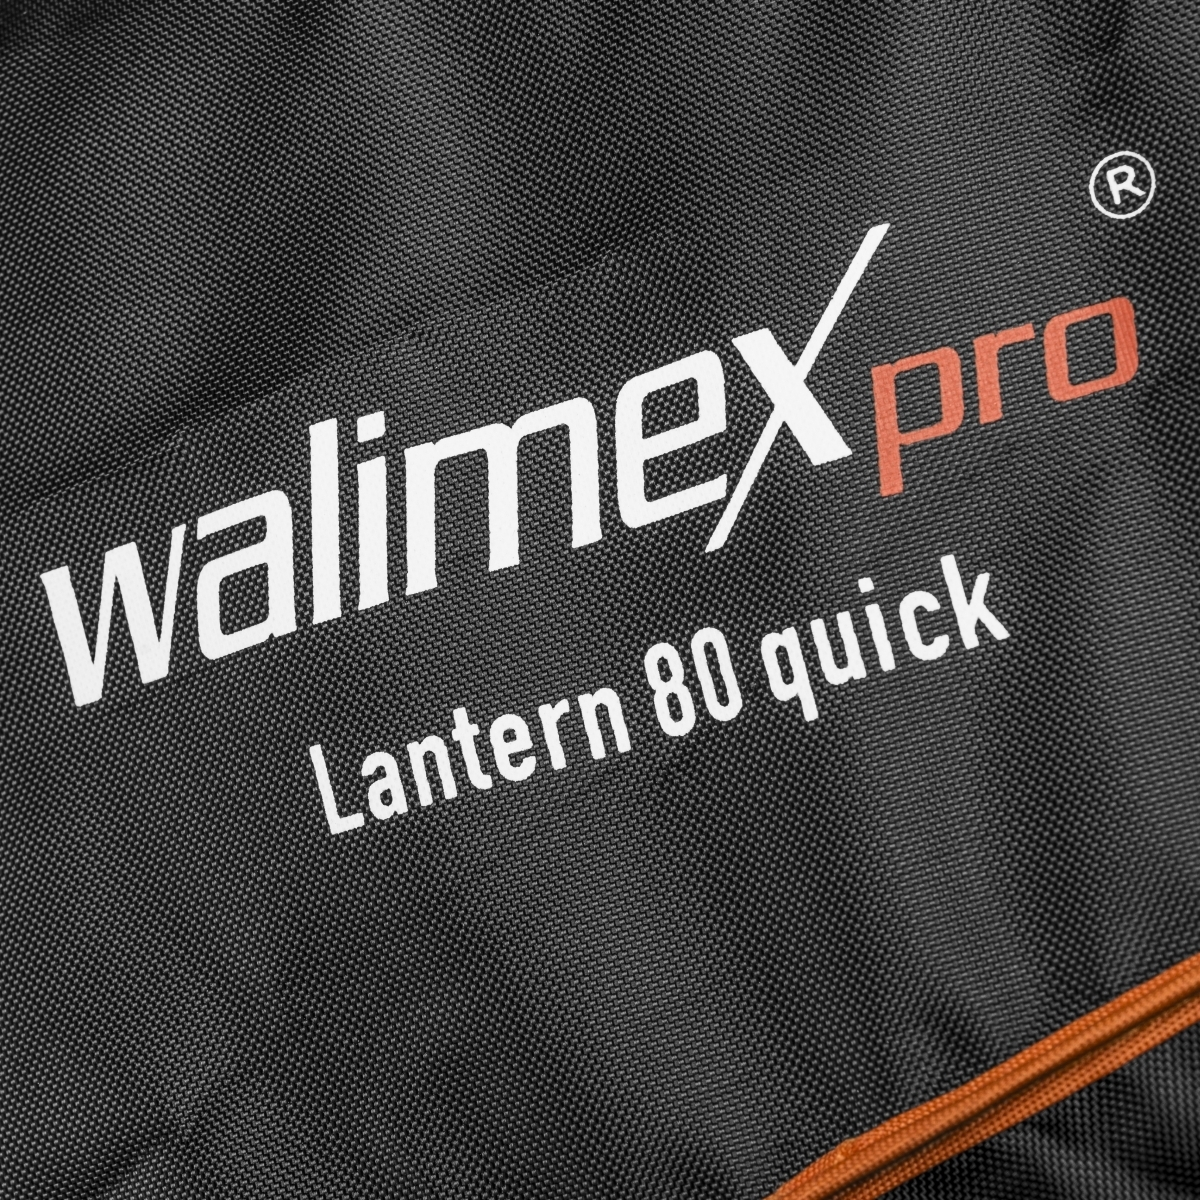 Walimex pro 360° Ambient Light Softbox 80cm mit Softboxadapter Visatec